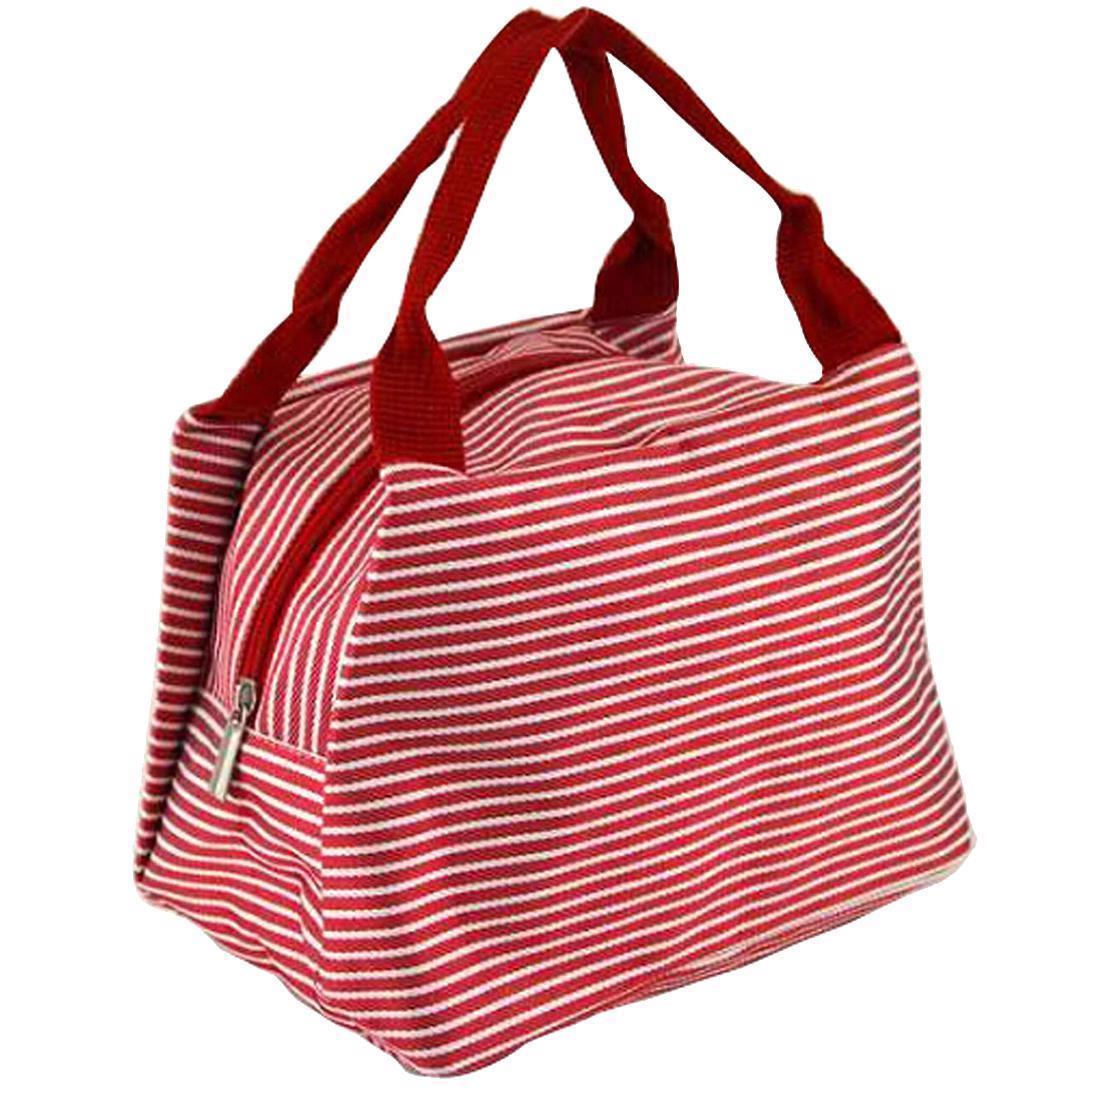 Stripe Lunch Box Carry Bag For Travel Picnic Bags Summer Picnic Items Lunch Box